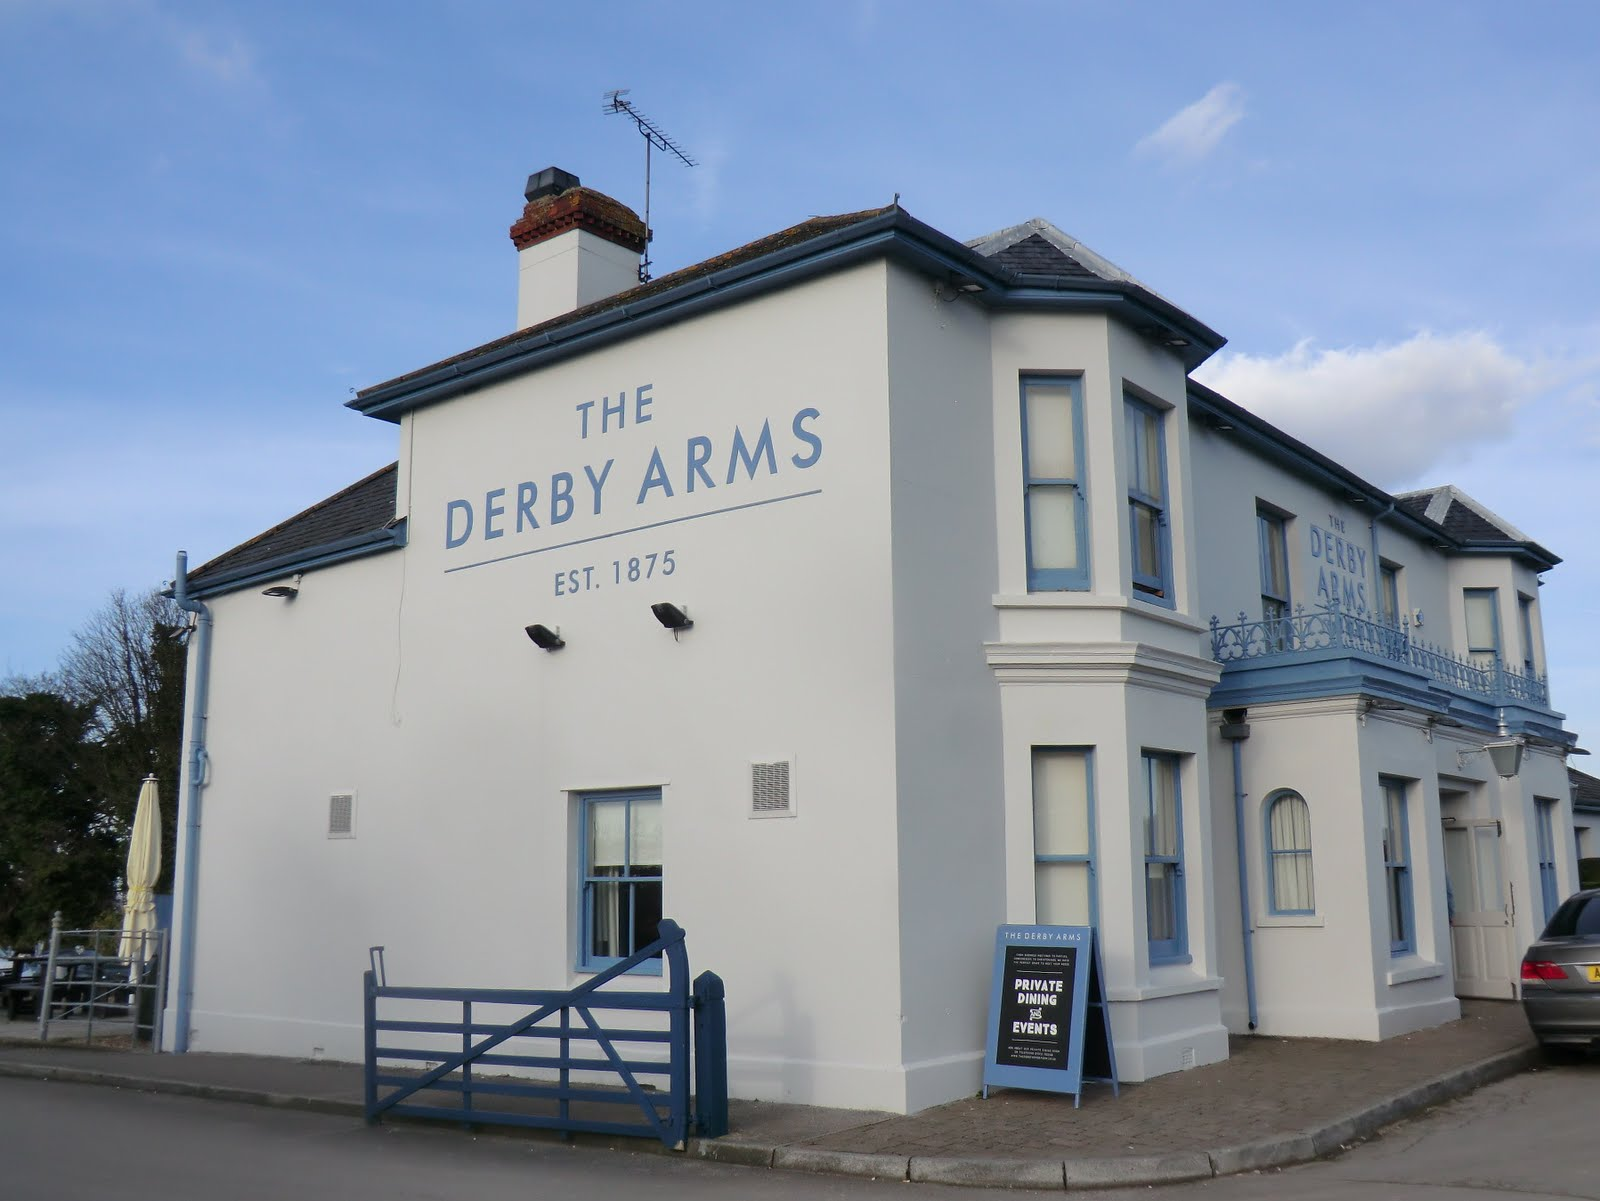 CIMG3692 The Derby Arms pub, Epsom Downs